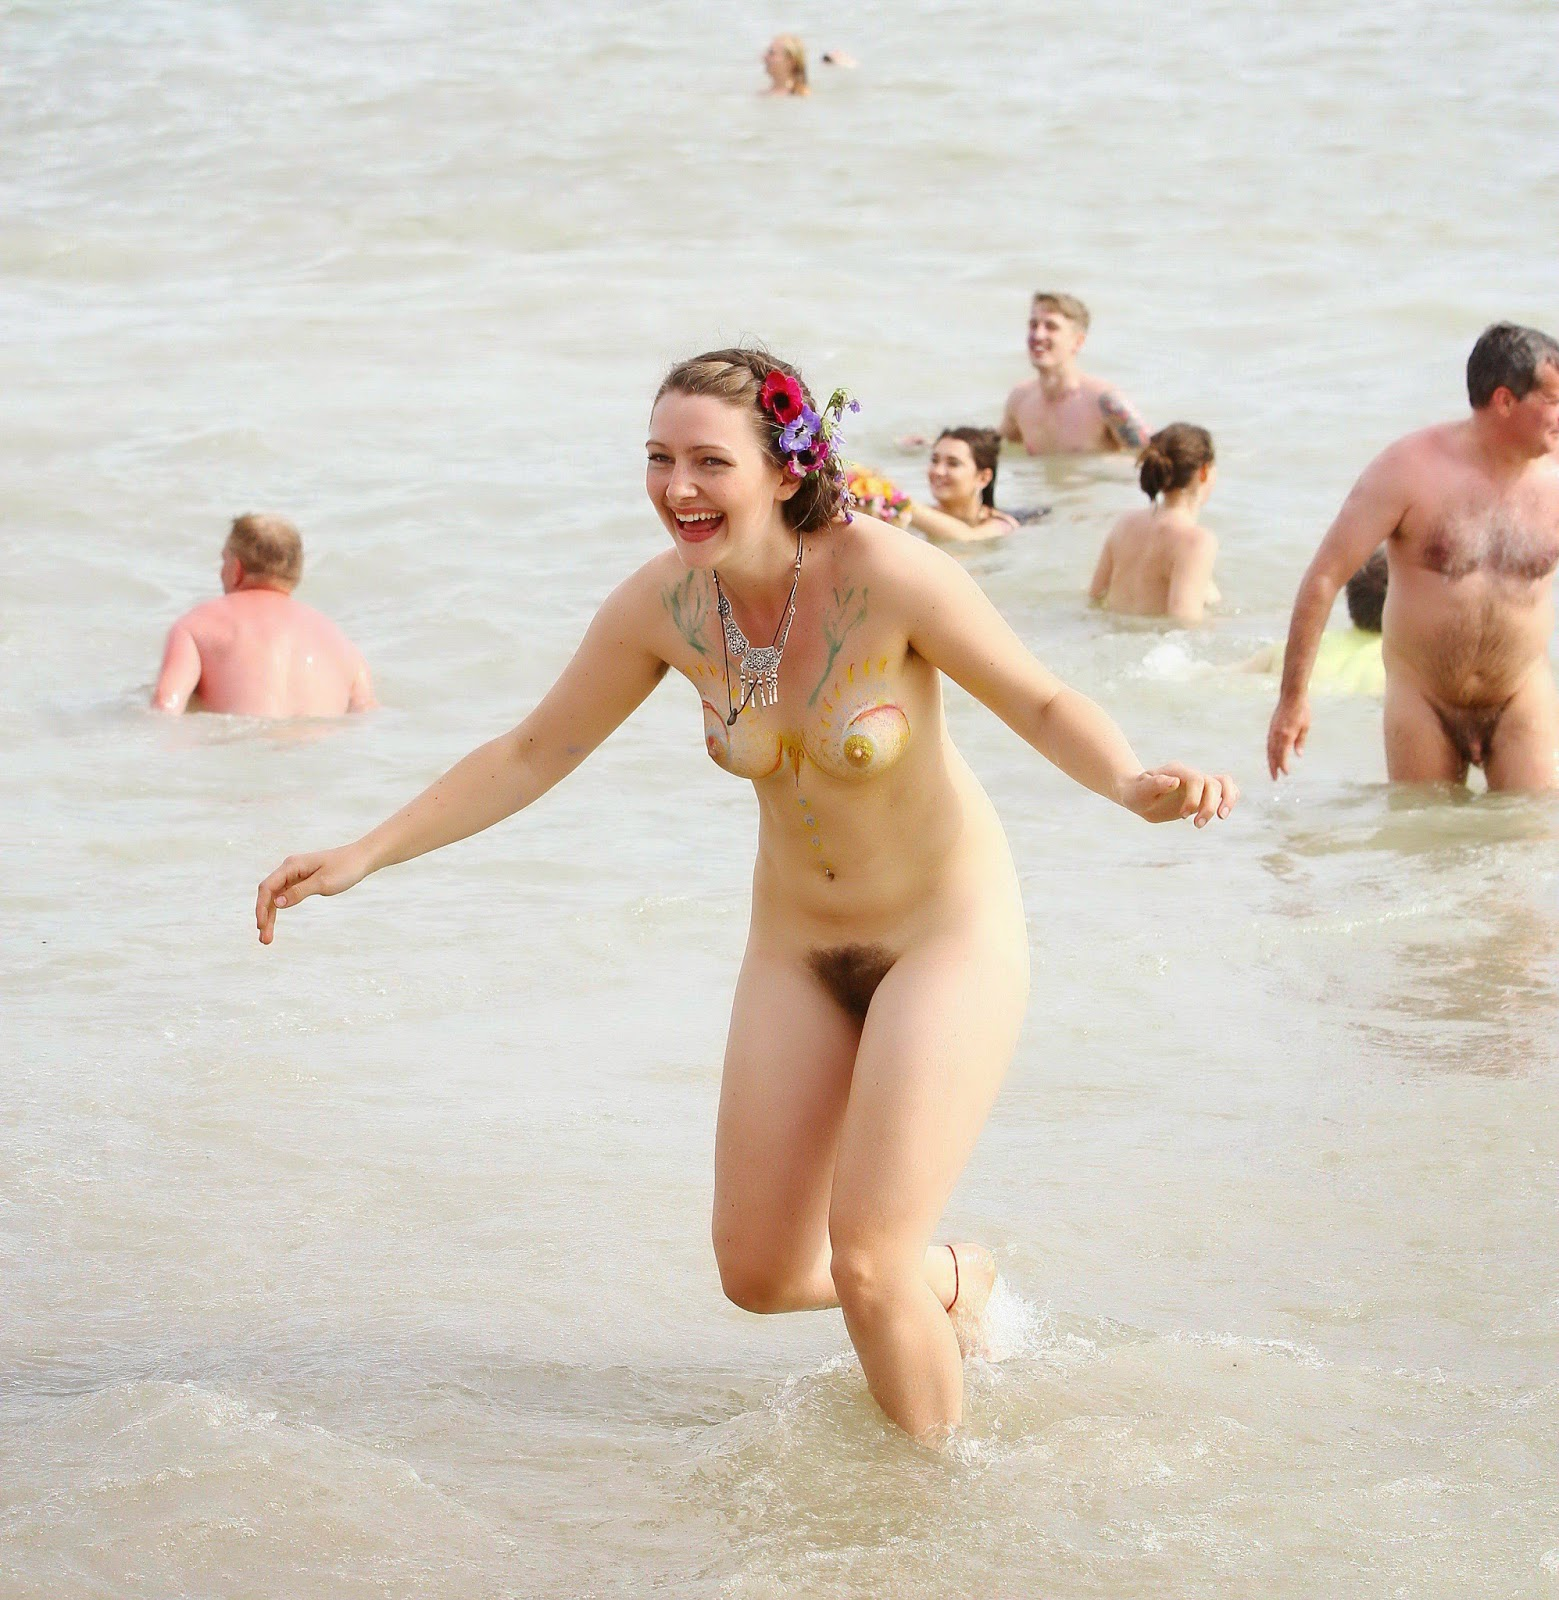 Happy nudists pics incredible. The